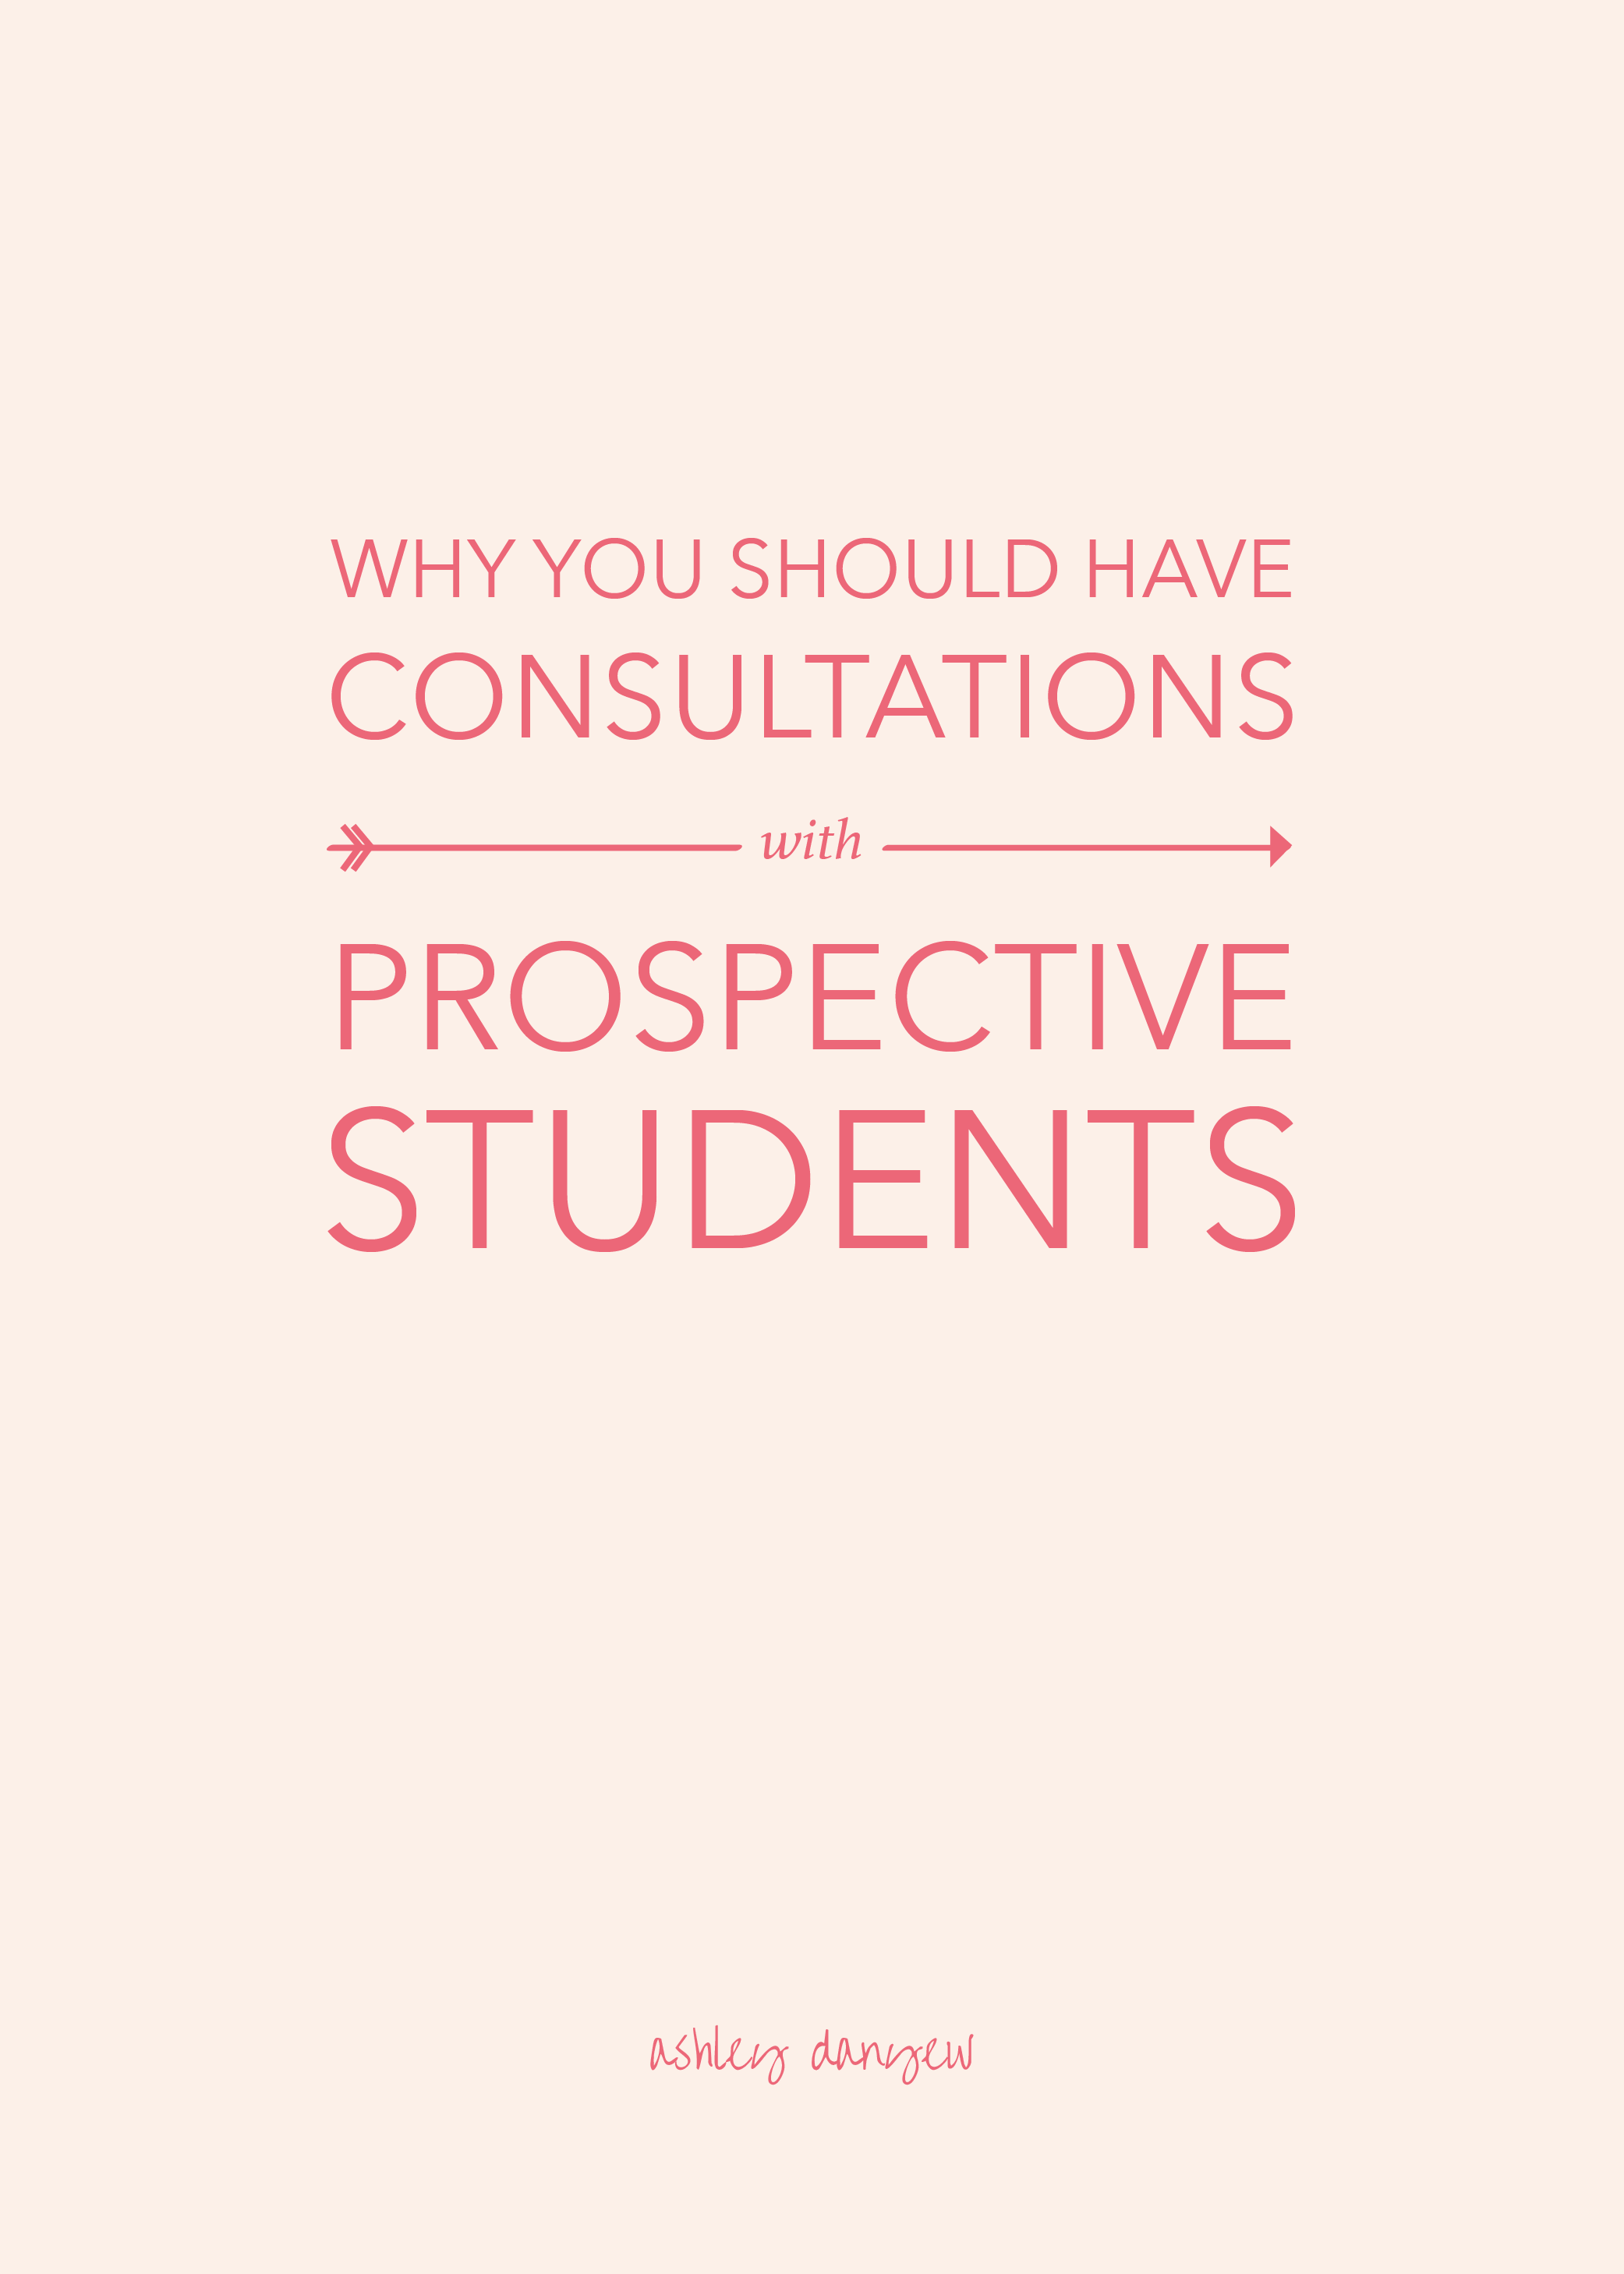 Why you should have consultations with prospective students | @ashleydanyew